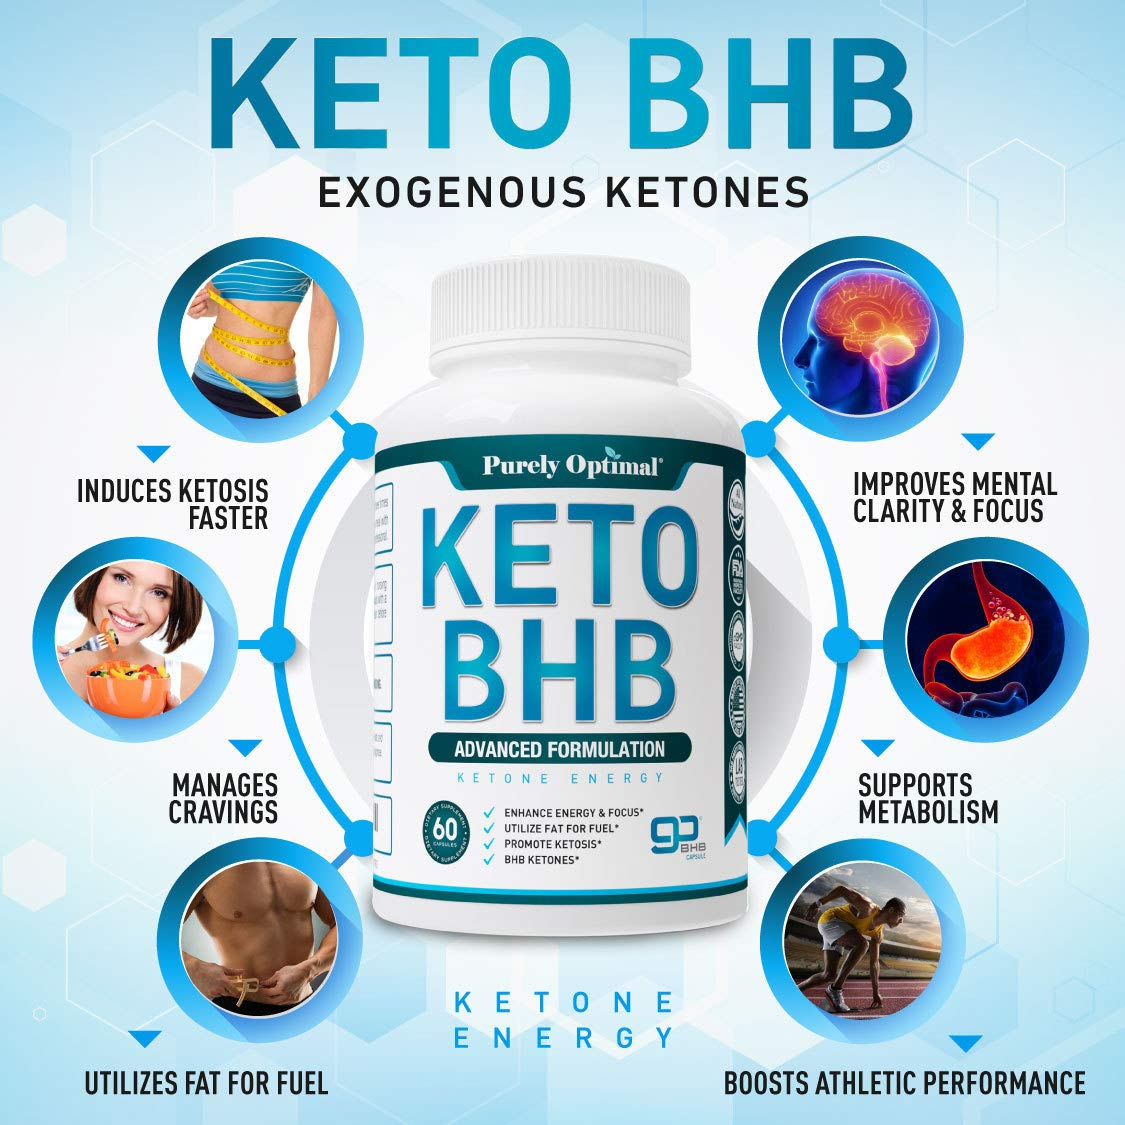 Premium Keto Diet Pills - Utilize Fat for Energy with Ketosis - Boost Energy & Focus, Manage Cravings, Support Metabolism - Keto BHB Supplement for Women and Men - 30 Day Supply by PURELY OPTIMAL (Image #3)